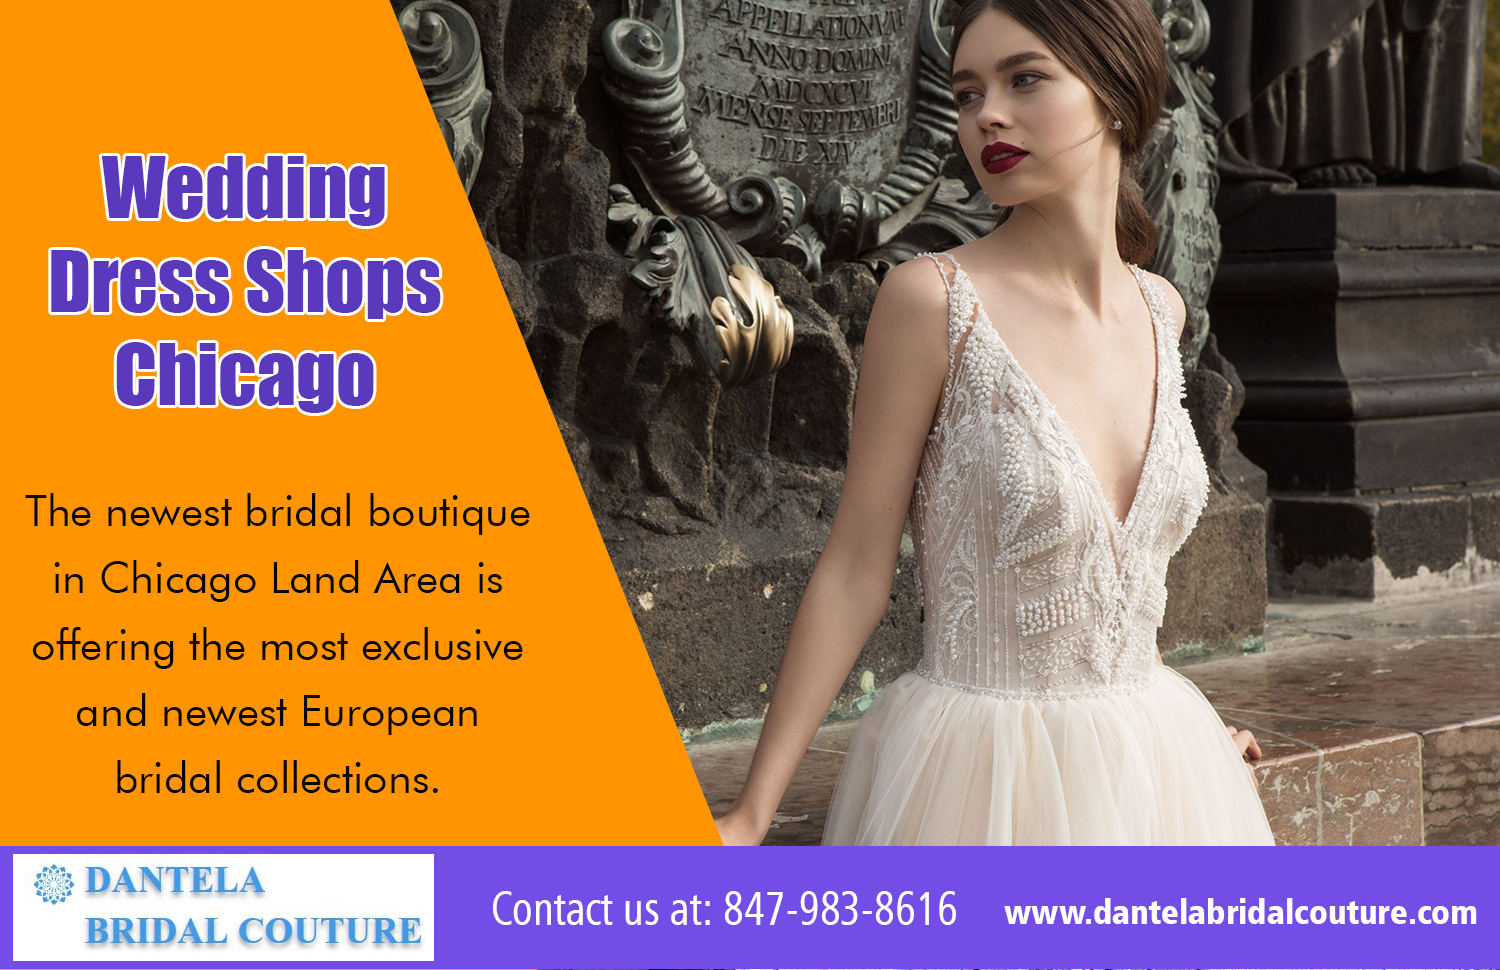 Wedding Dresses Chicago|https://dantelabridalcouture.com/ - TryIMG.com